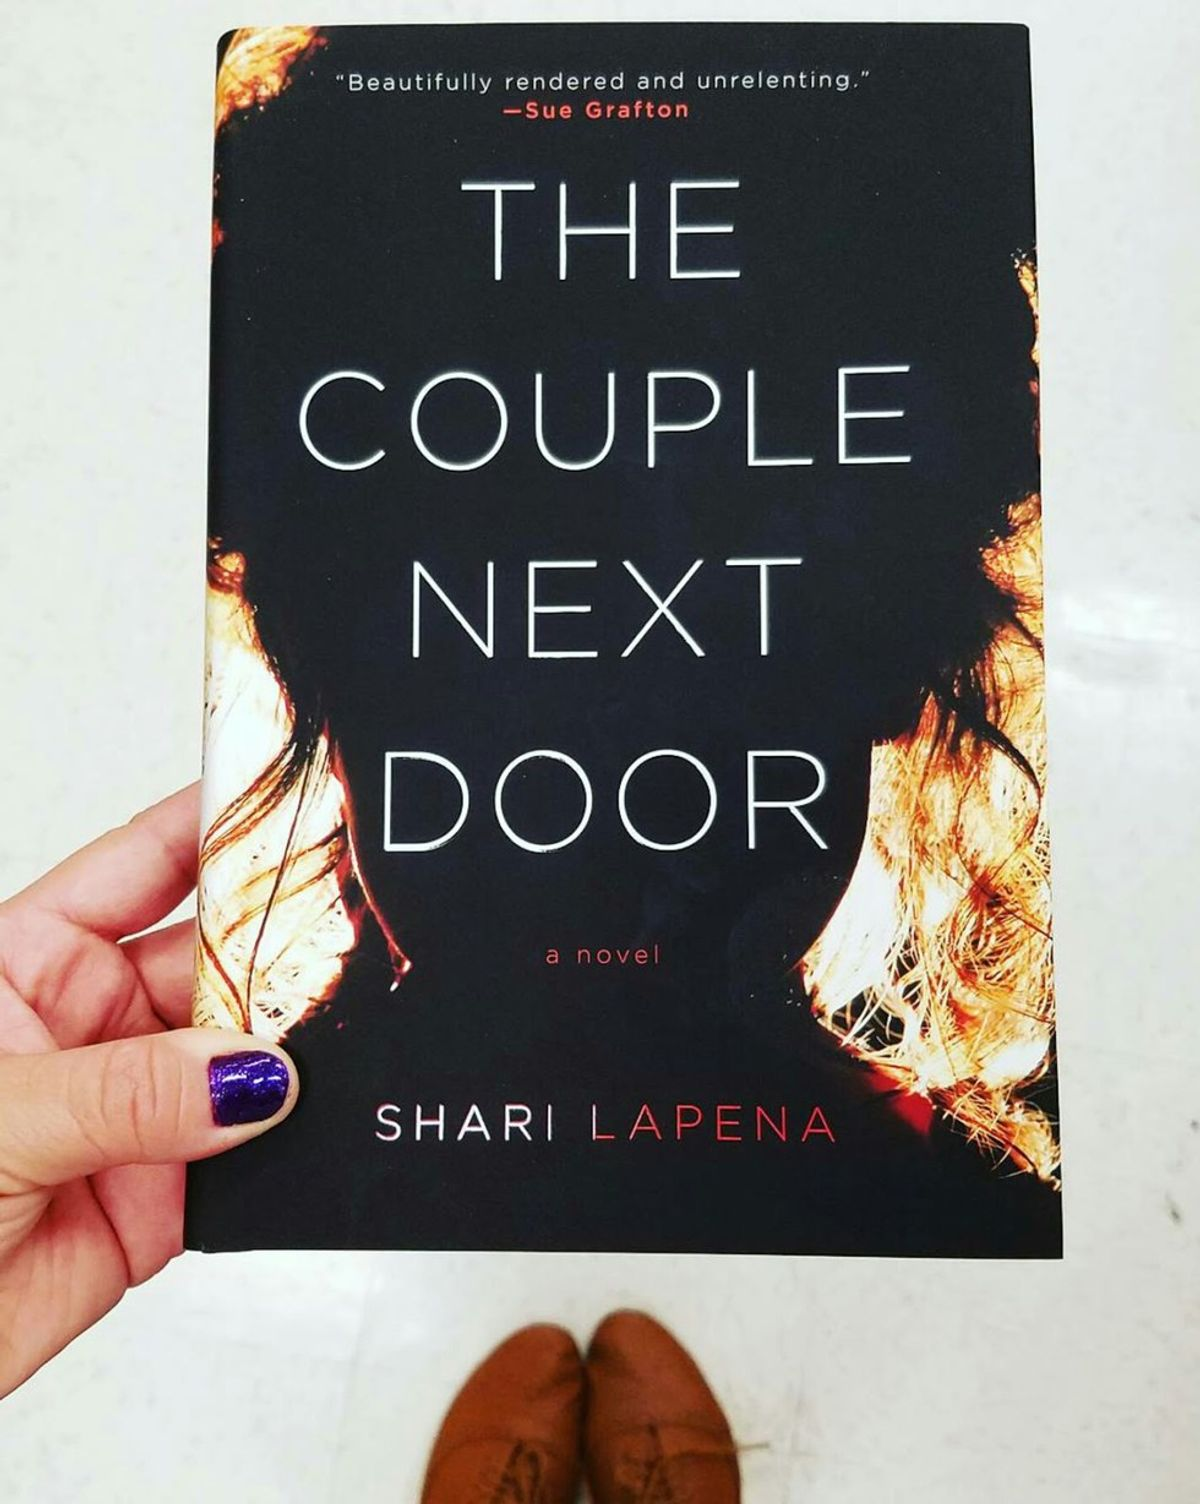 Read Or Run: A Review Of The Couple Next Door By Shari Lapena